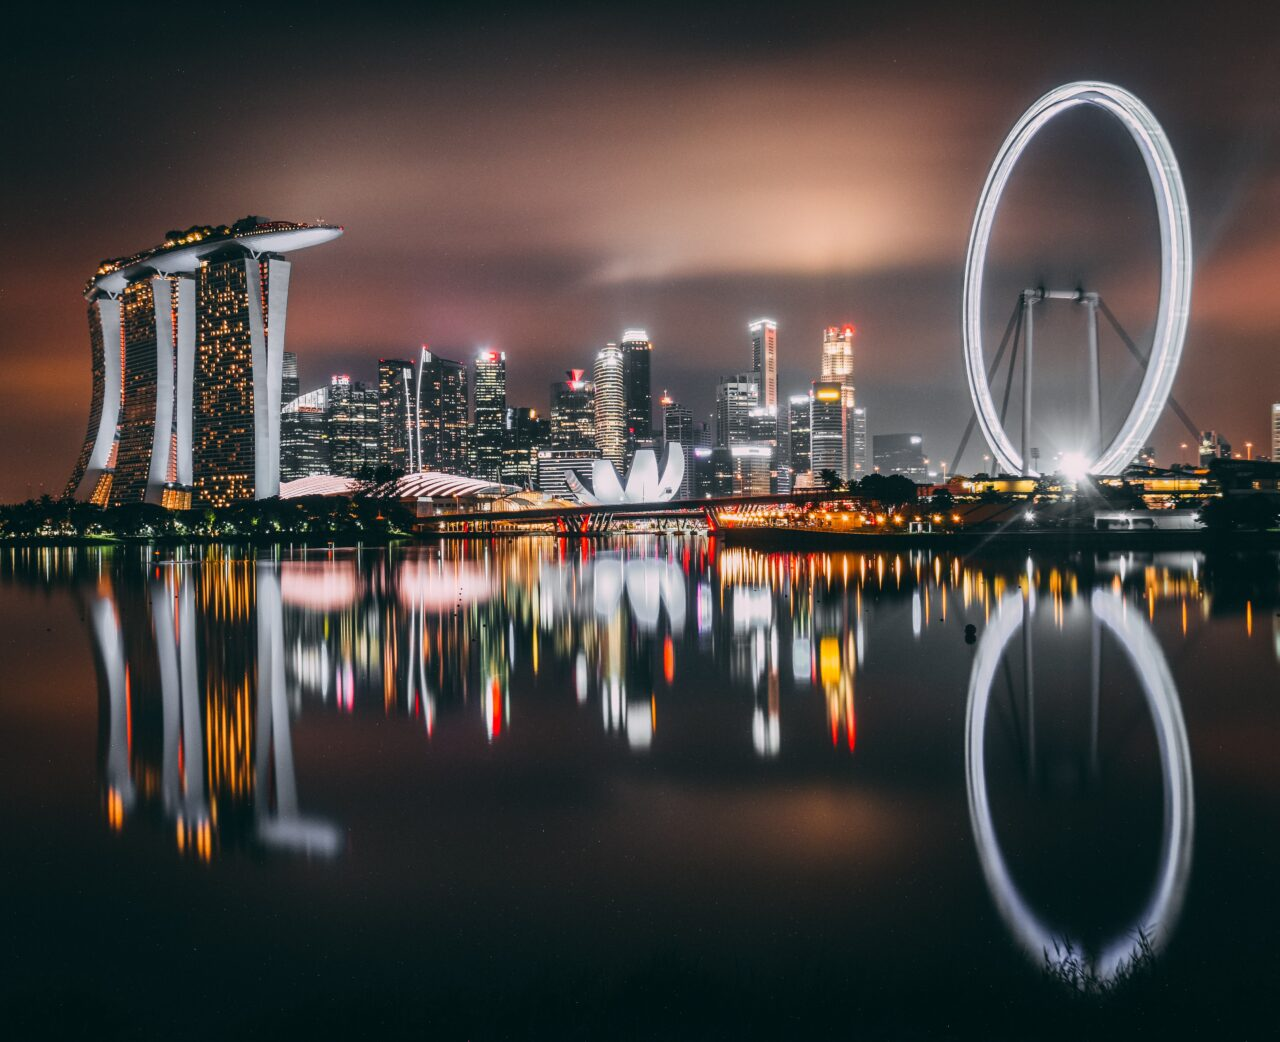 Singapore Flyer, Asia. Singapore has seen a particular rise in private markets